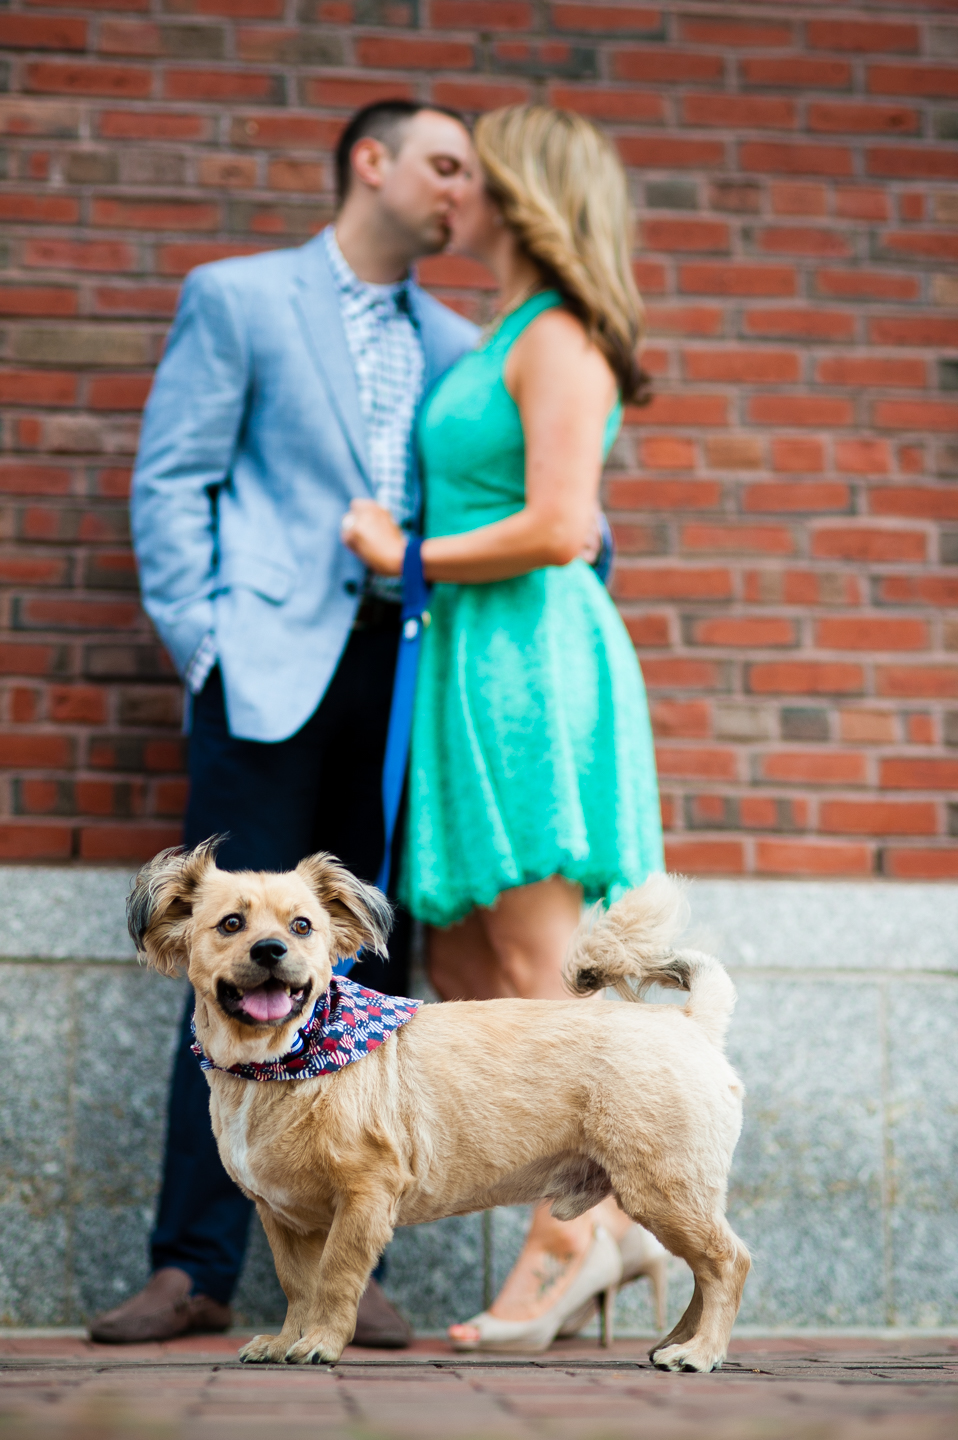 cute puppy is the center of attention with engaged couple kissing in the background